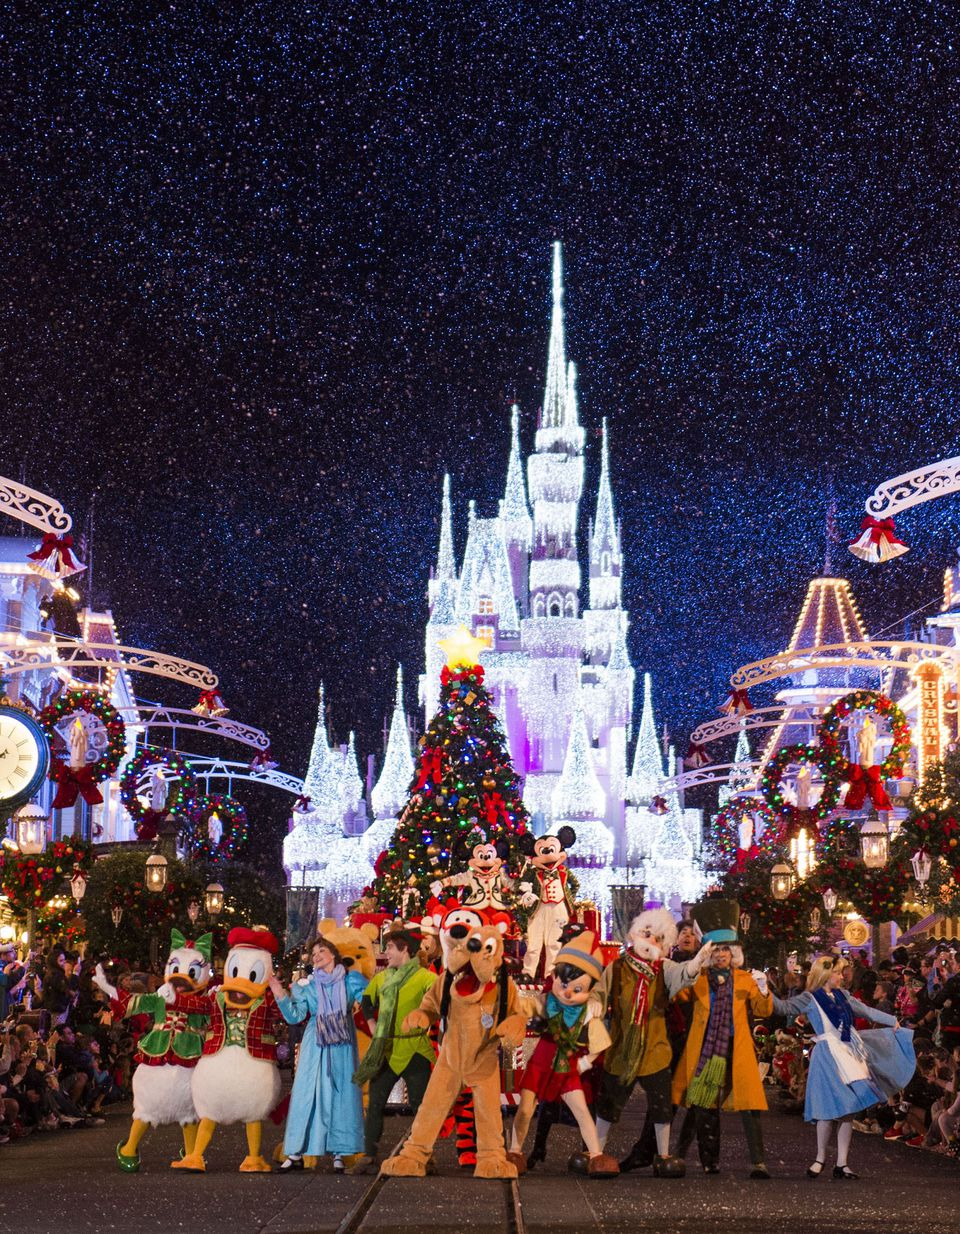 Winnie the Pooh and other Disney characters in holiday parade in front of Cinderella Castle at Magic Kingdom.